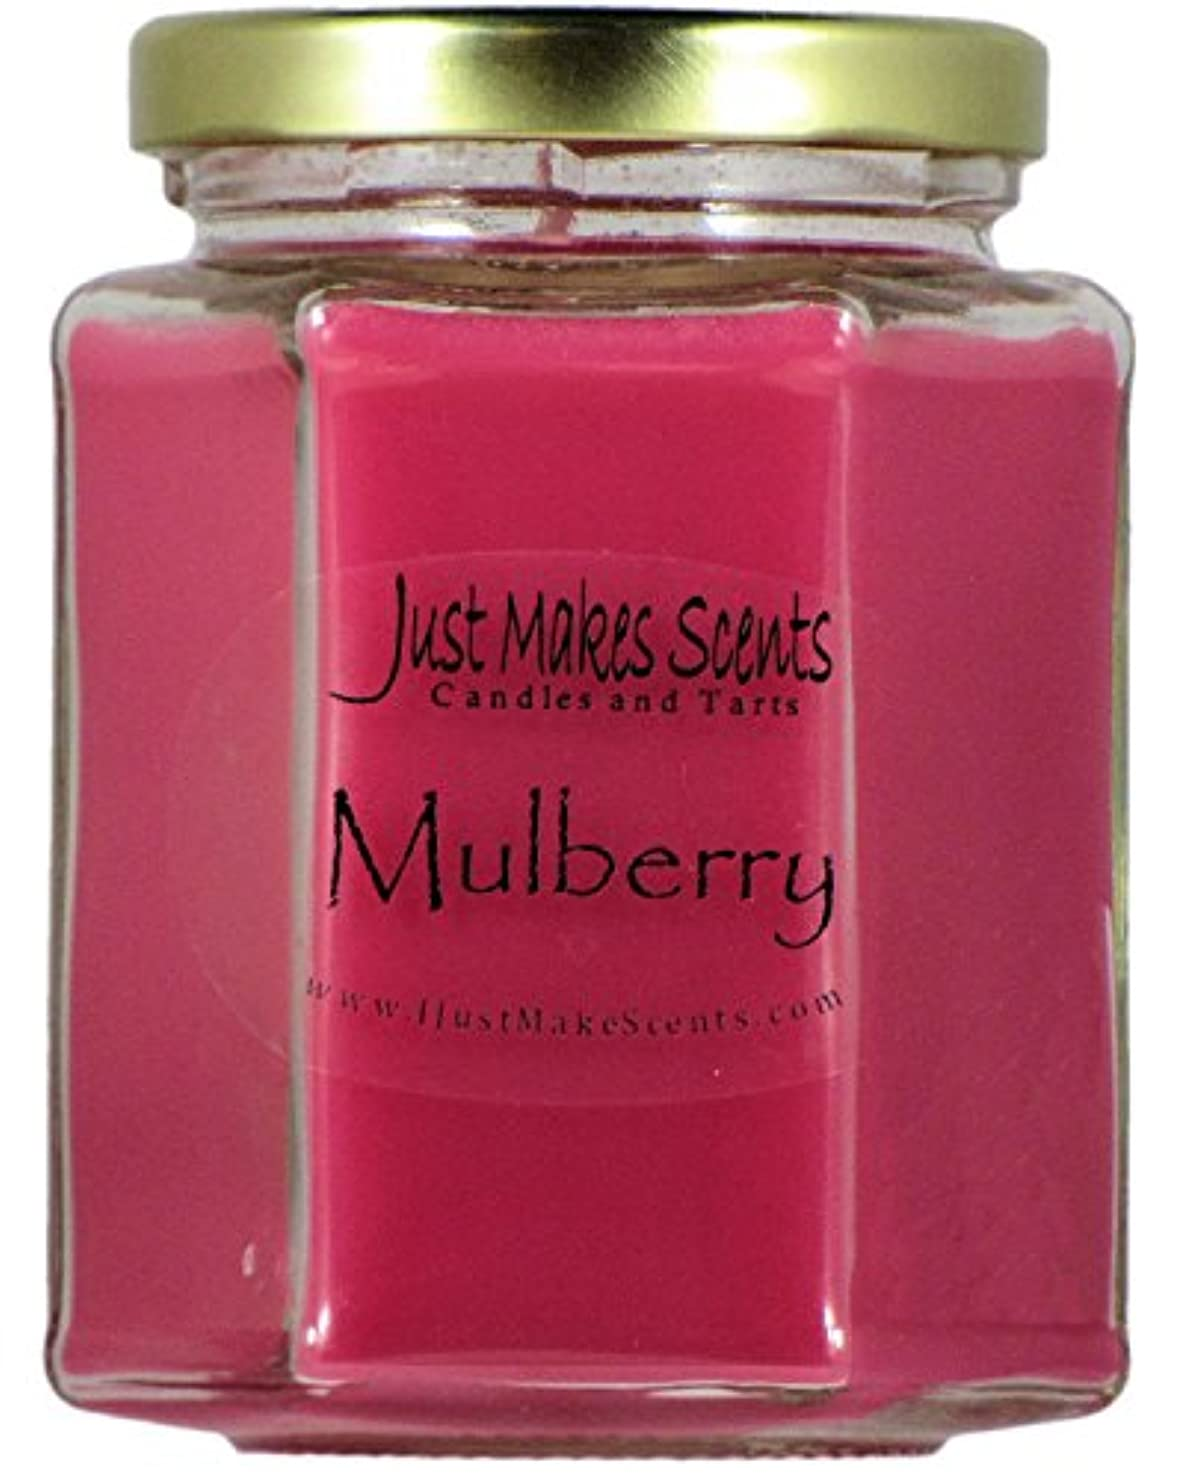 横にくるくるキャラバンMulberry香りつきBlended Soy Candle by Just Makes Scents